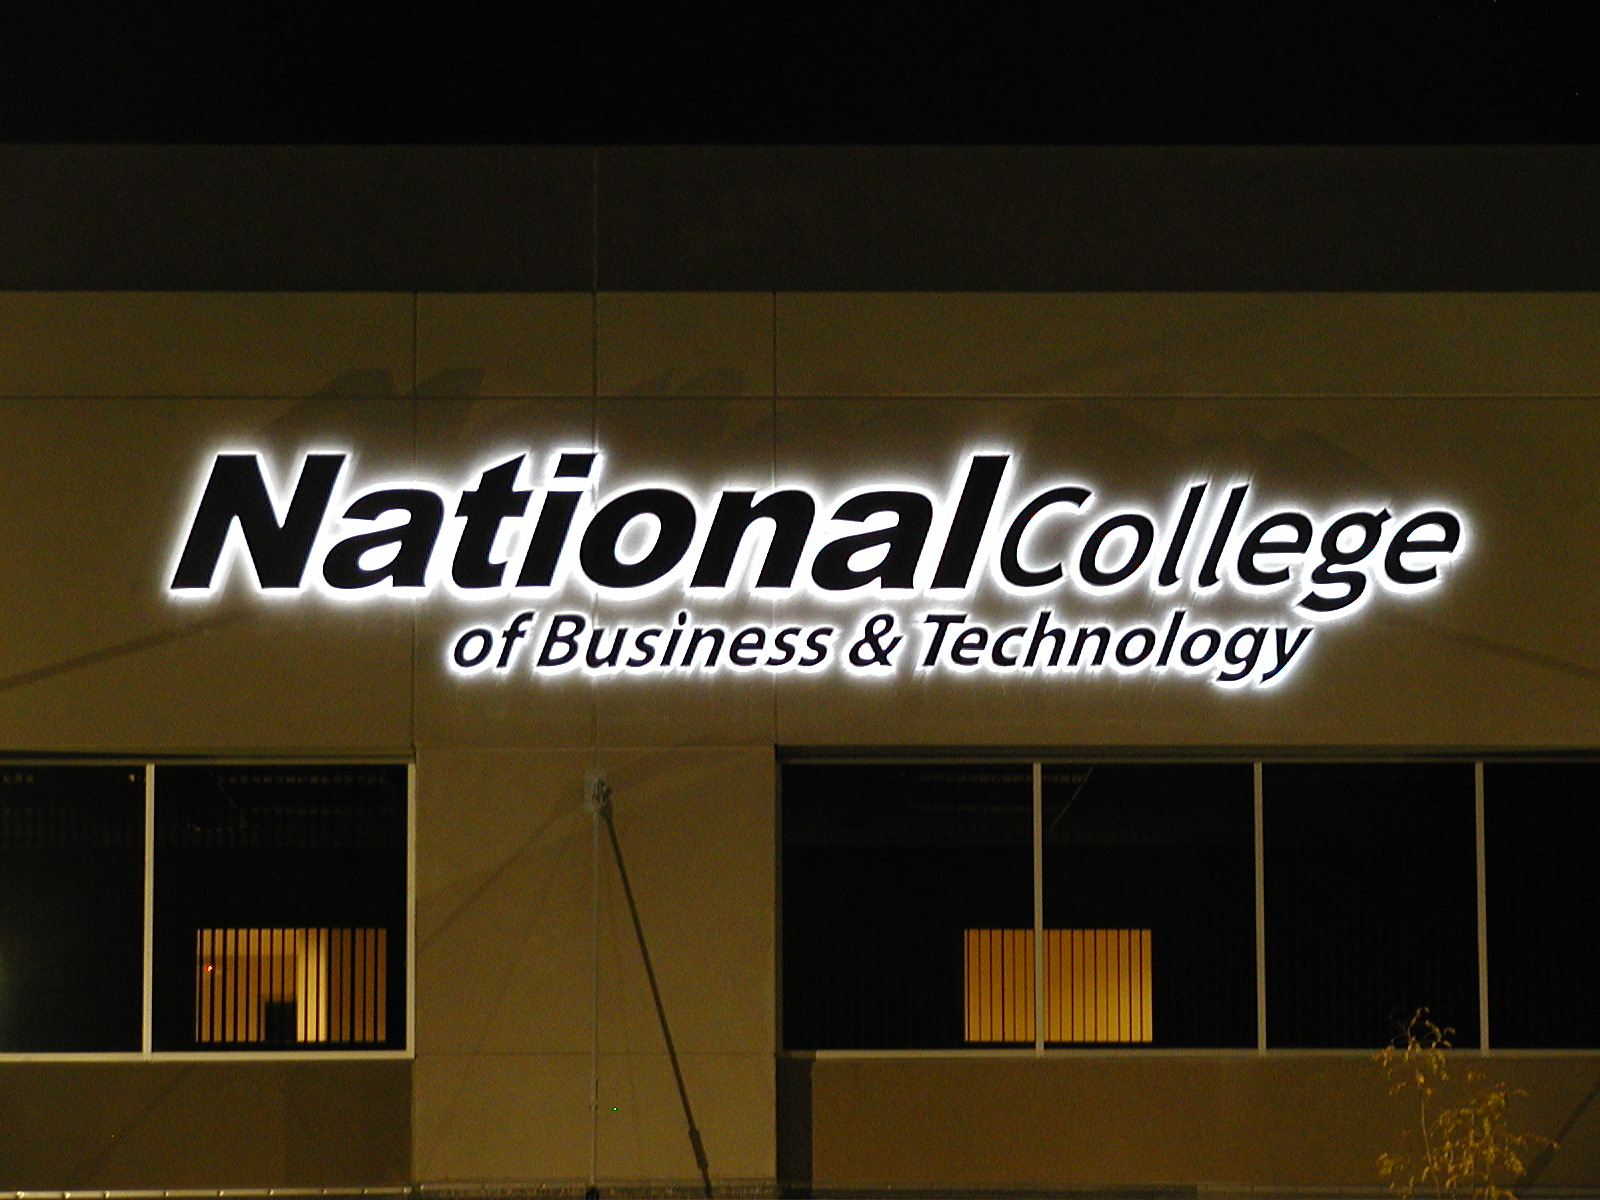 National College of Business and TechnologyEducation Dimensional Letters Sign